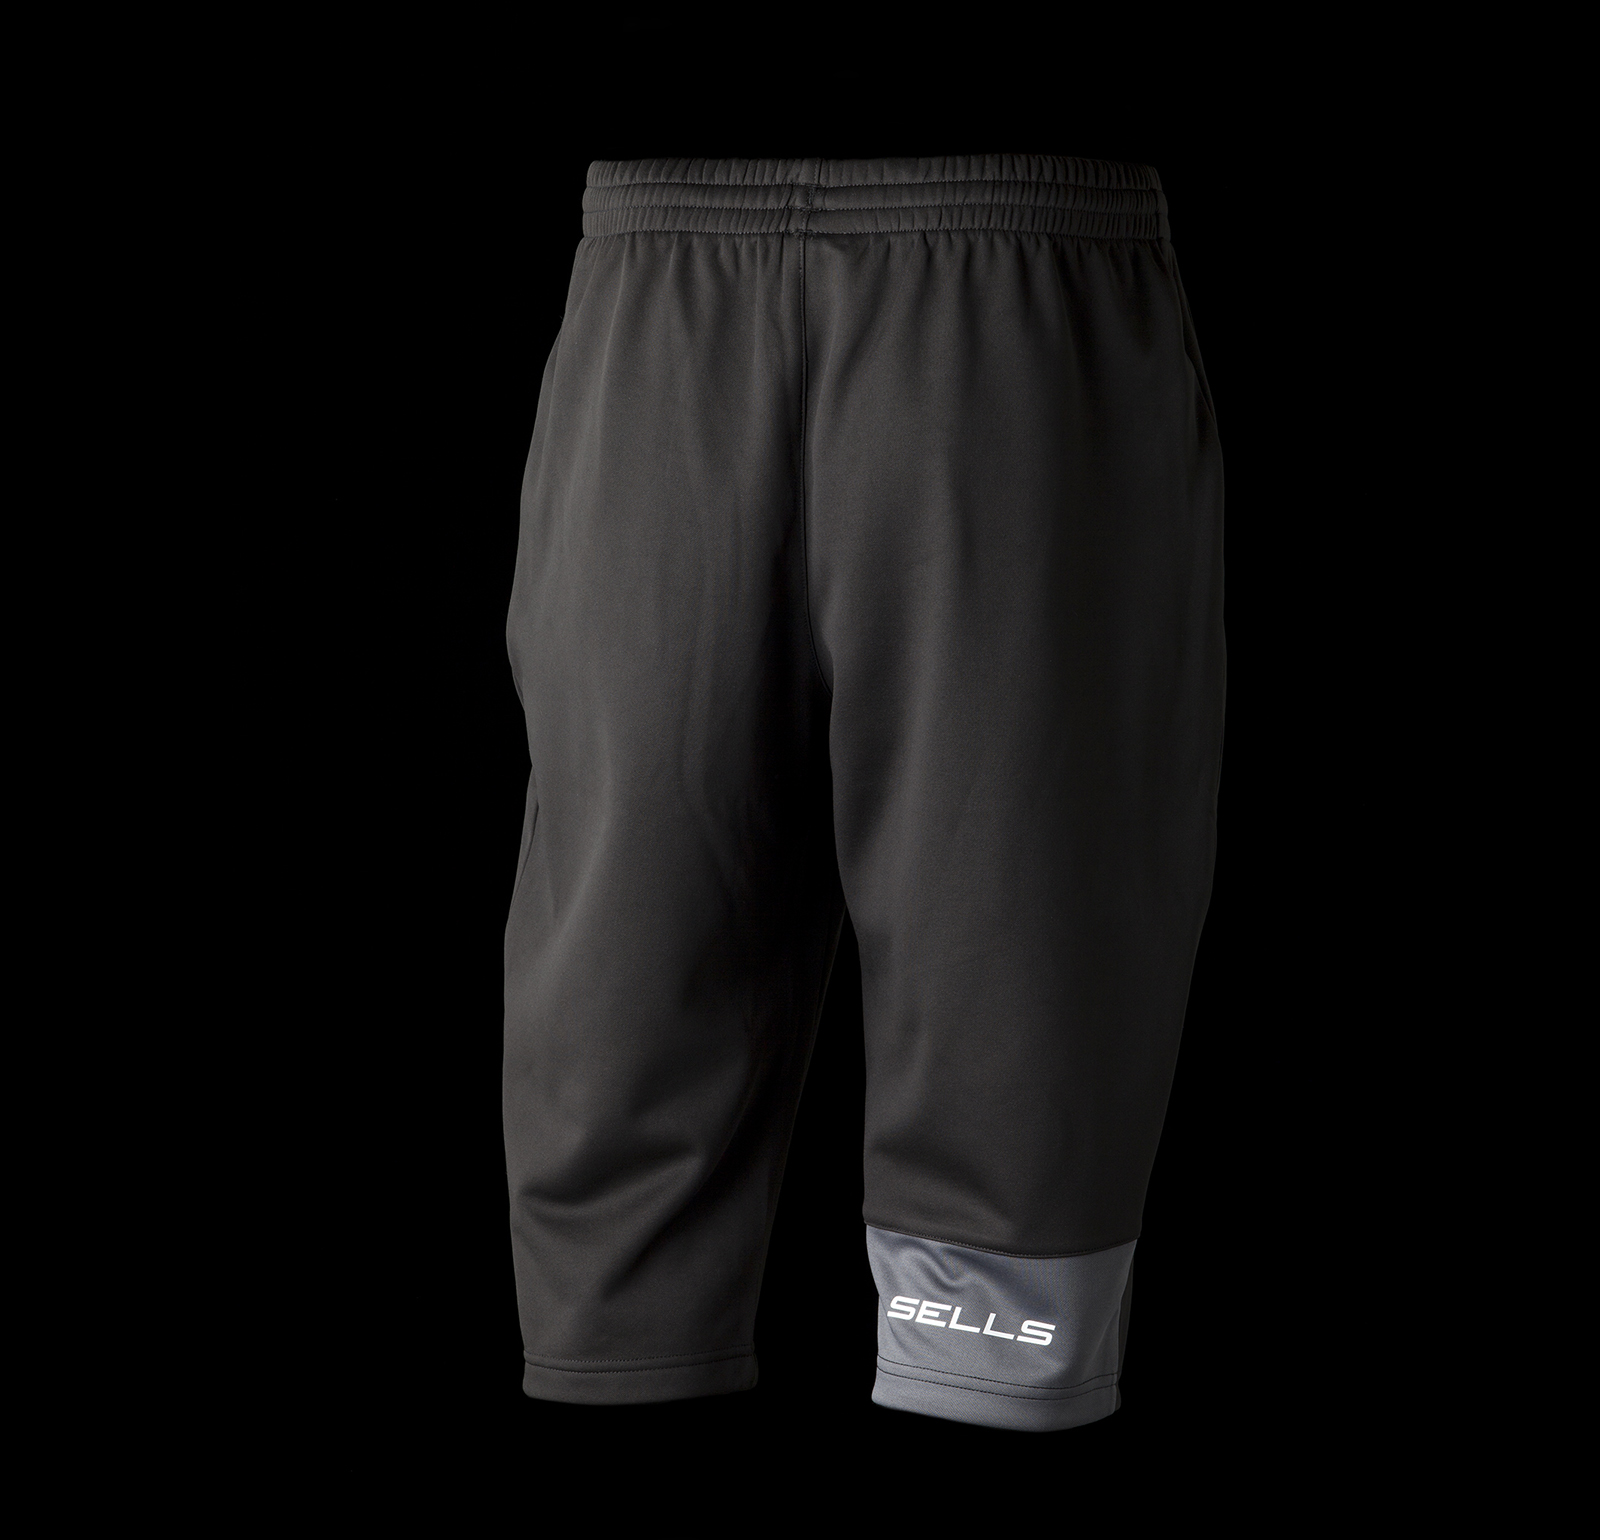 excel-3-4-pant-promo-40